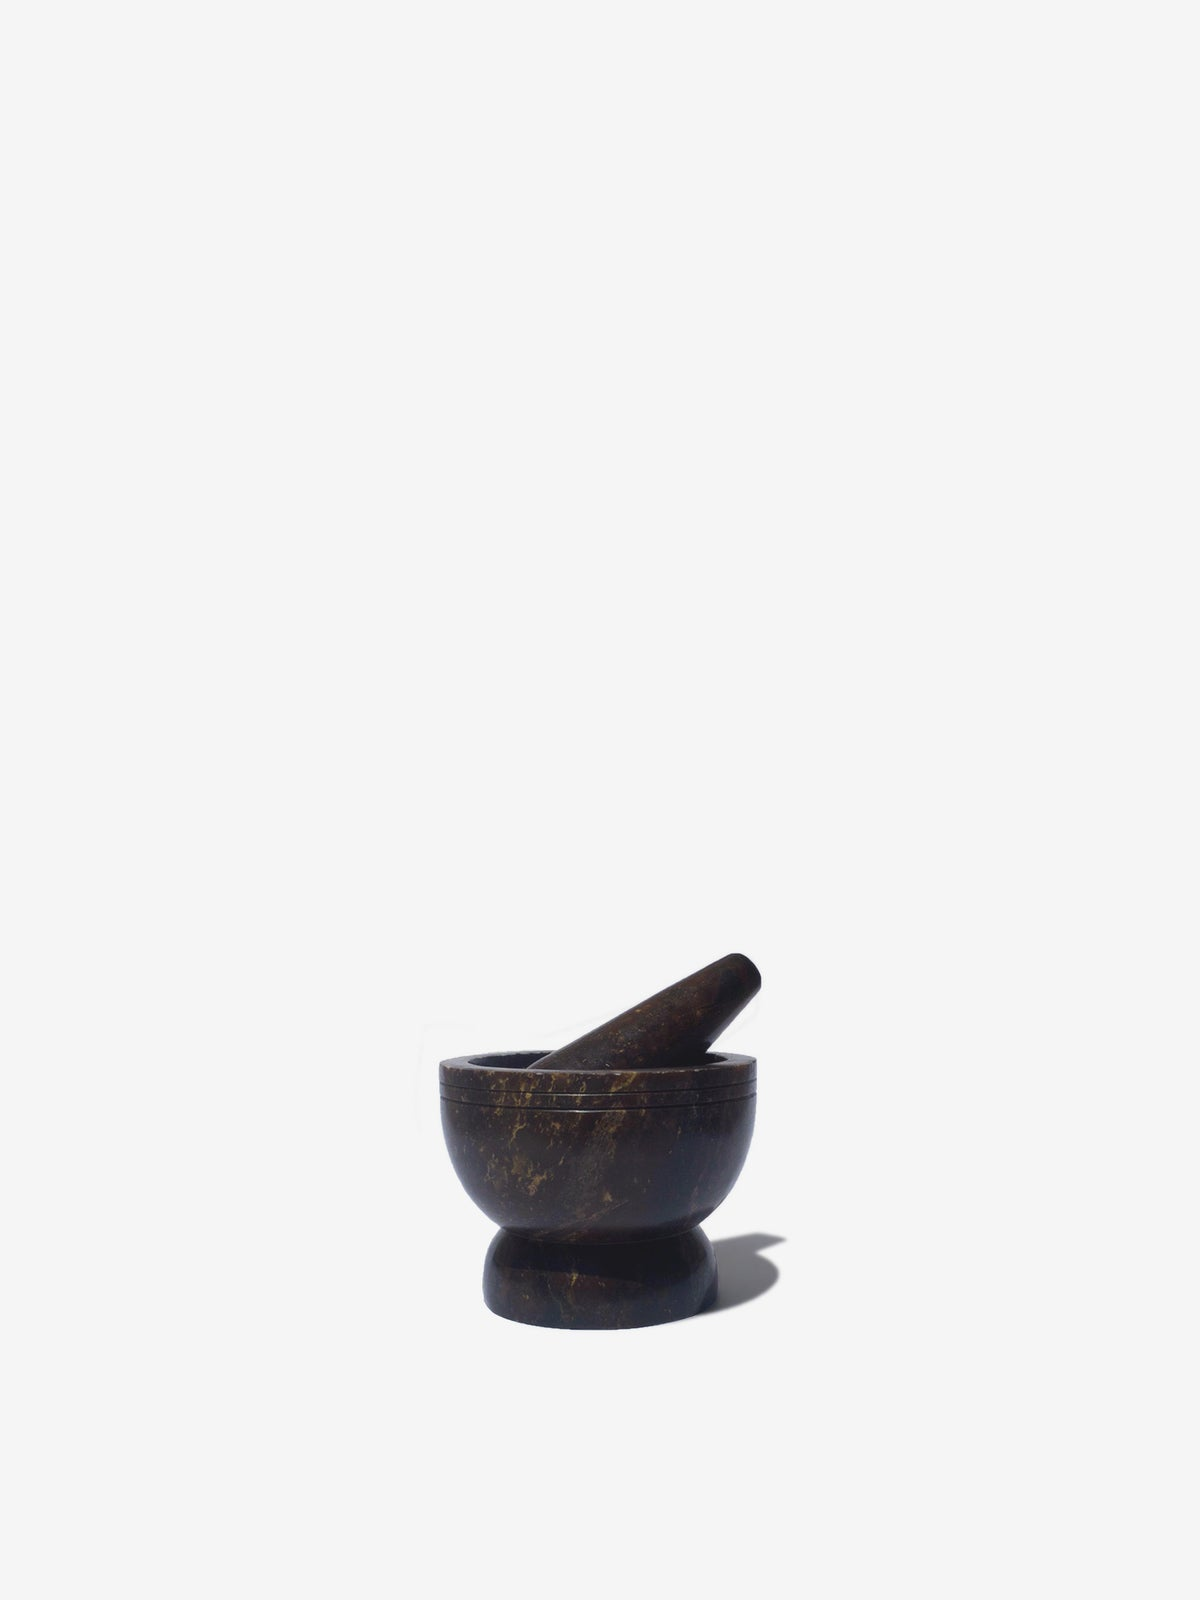 Image of Mortar & Pestle